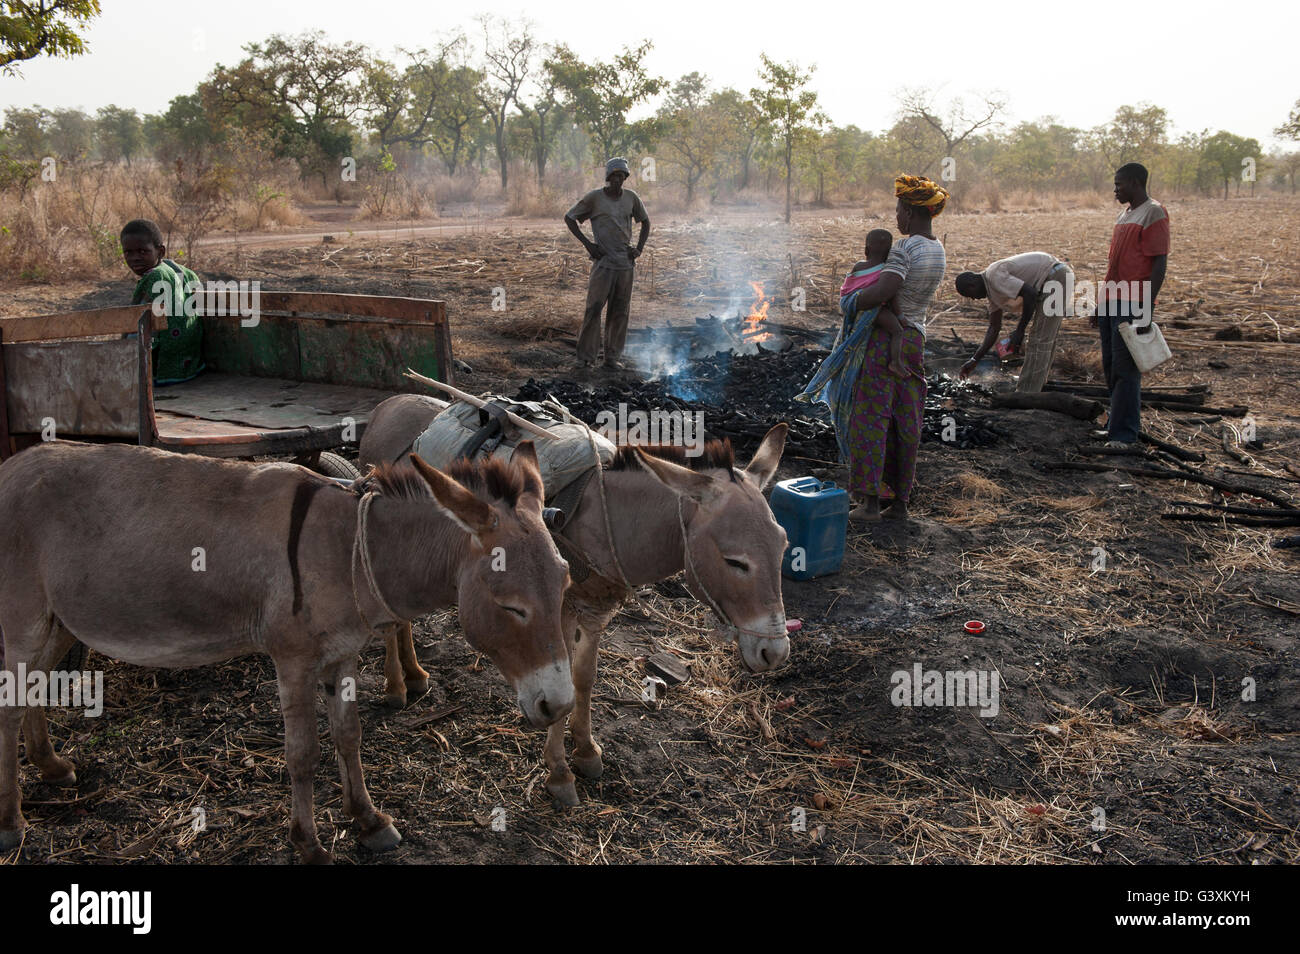 MALI, Sahel region, over production of charcoal from bush wood is a environmental impact for this dry region, charcoal - Stock Image